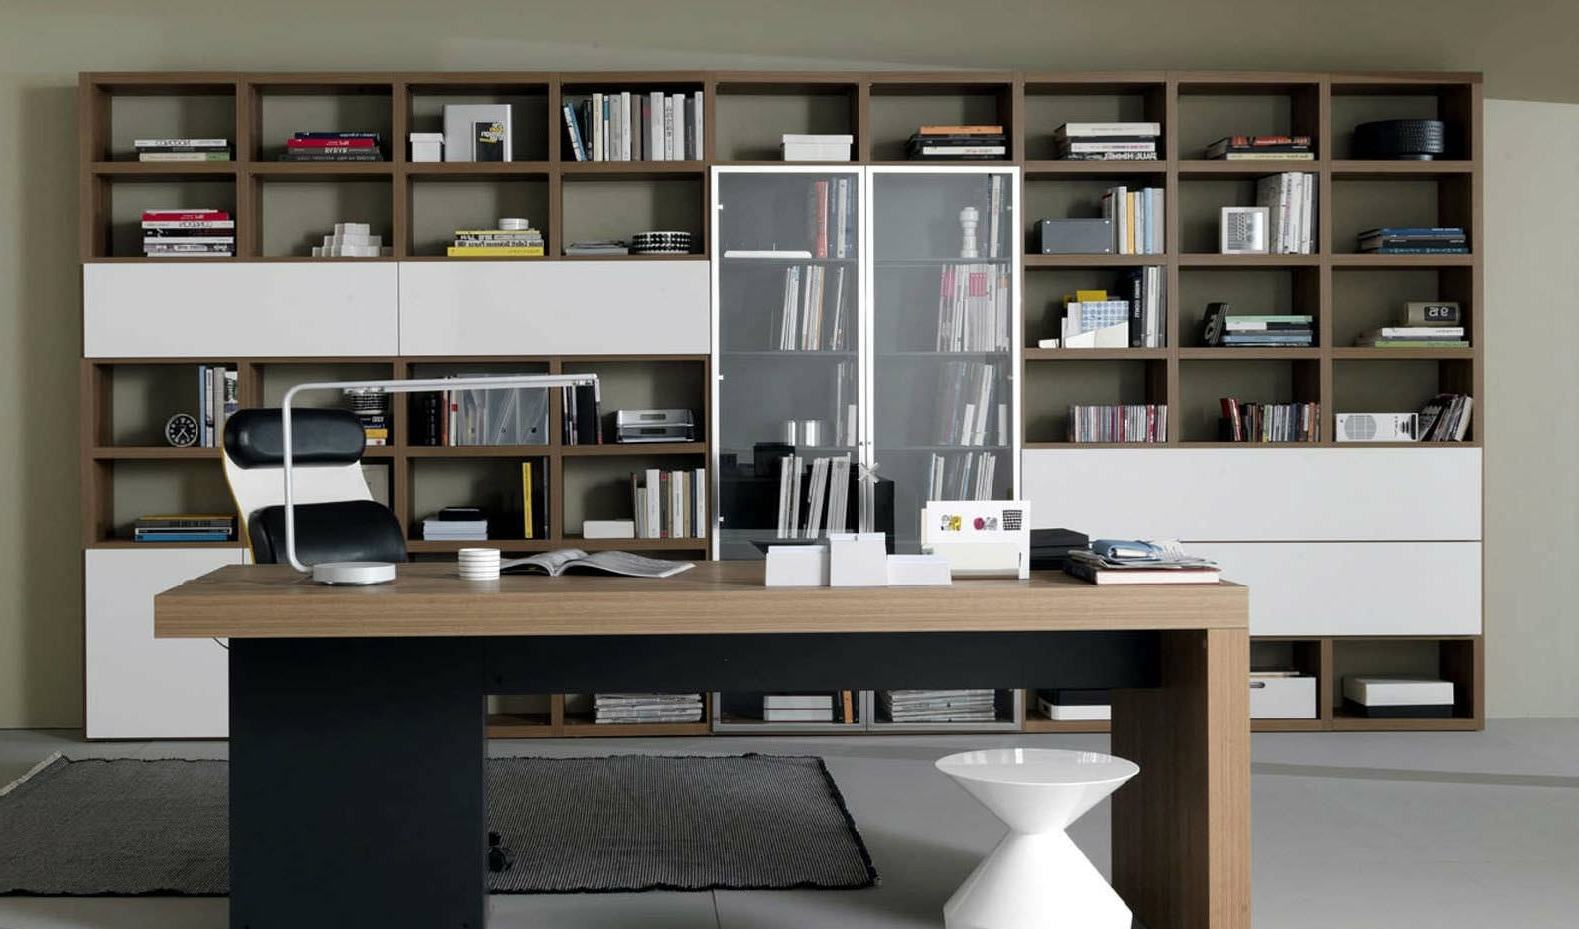 Furniture Home: Staggering Contemporary Bookcases Images Concept For Well Liked Contemporary Bookcases (View 2 of 15)